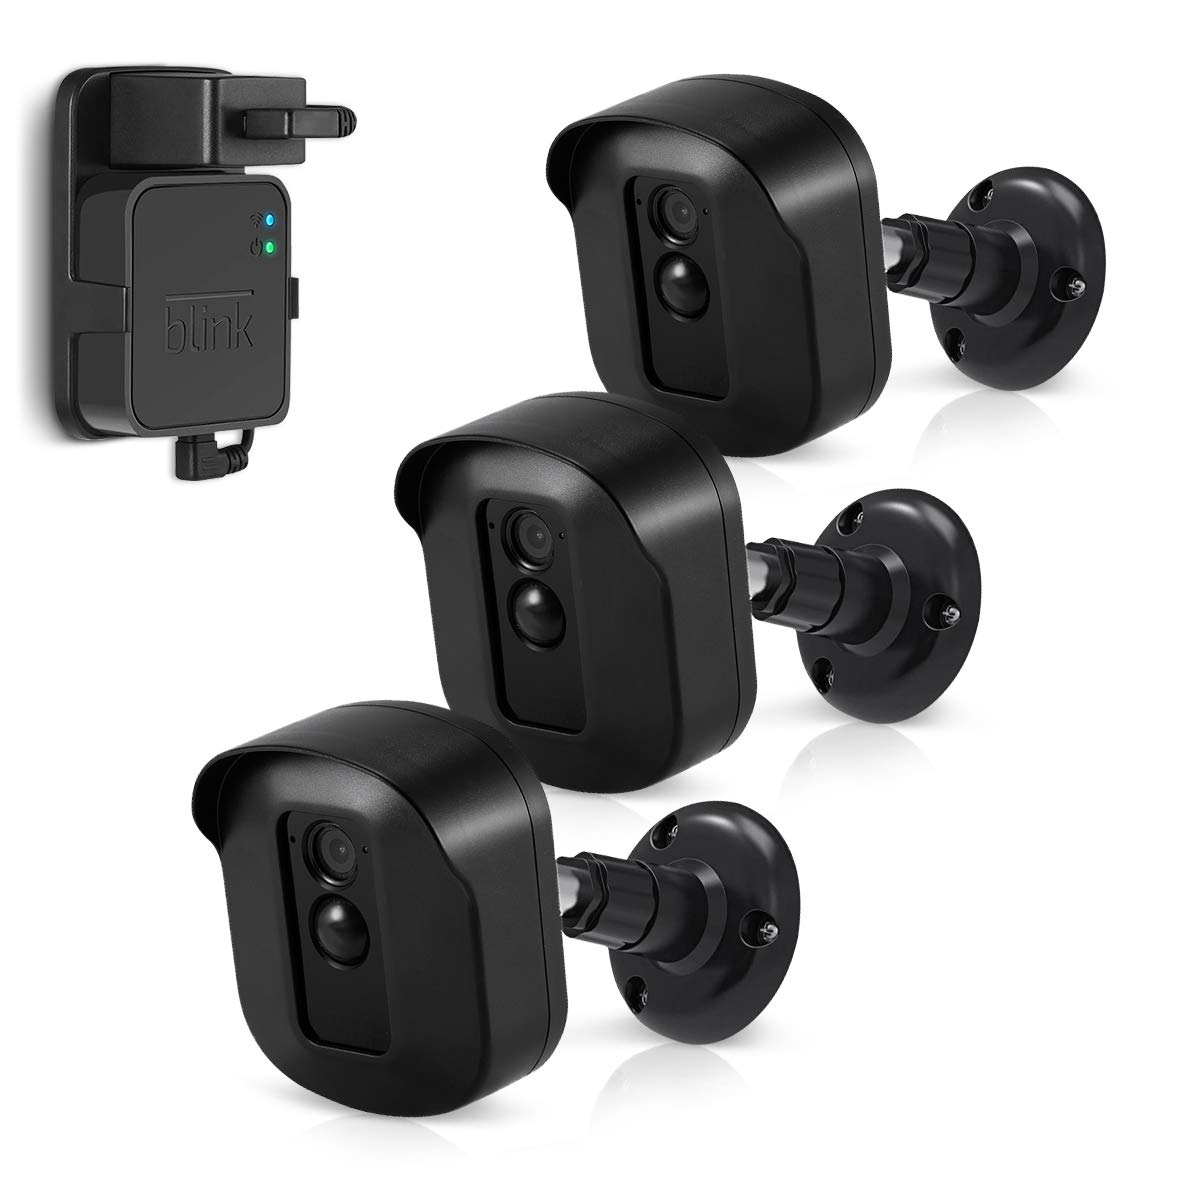 Blink XT2 Camera Wall Mount Bracket, Caremoo 3 Pack Weatherproof Protective Housing/Mount and Blink Sync Module Outlet Mount for Blink XT2/ Blink XT Outdoor/Indoor Smart Security Camera (Black) by Caremoo